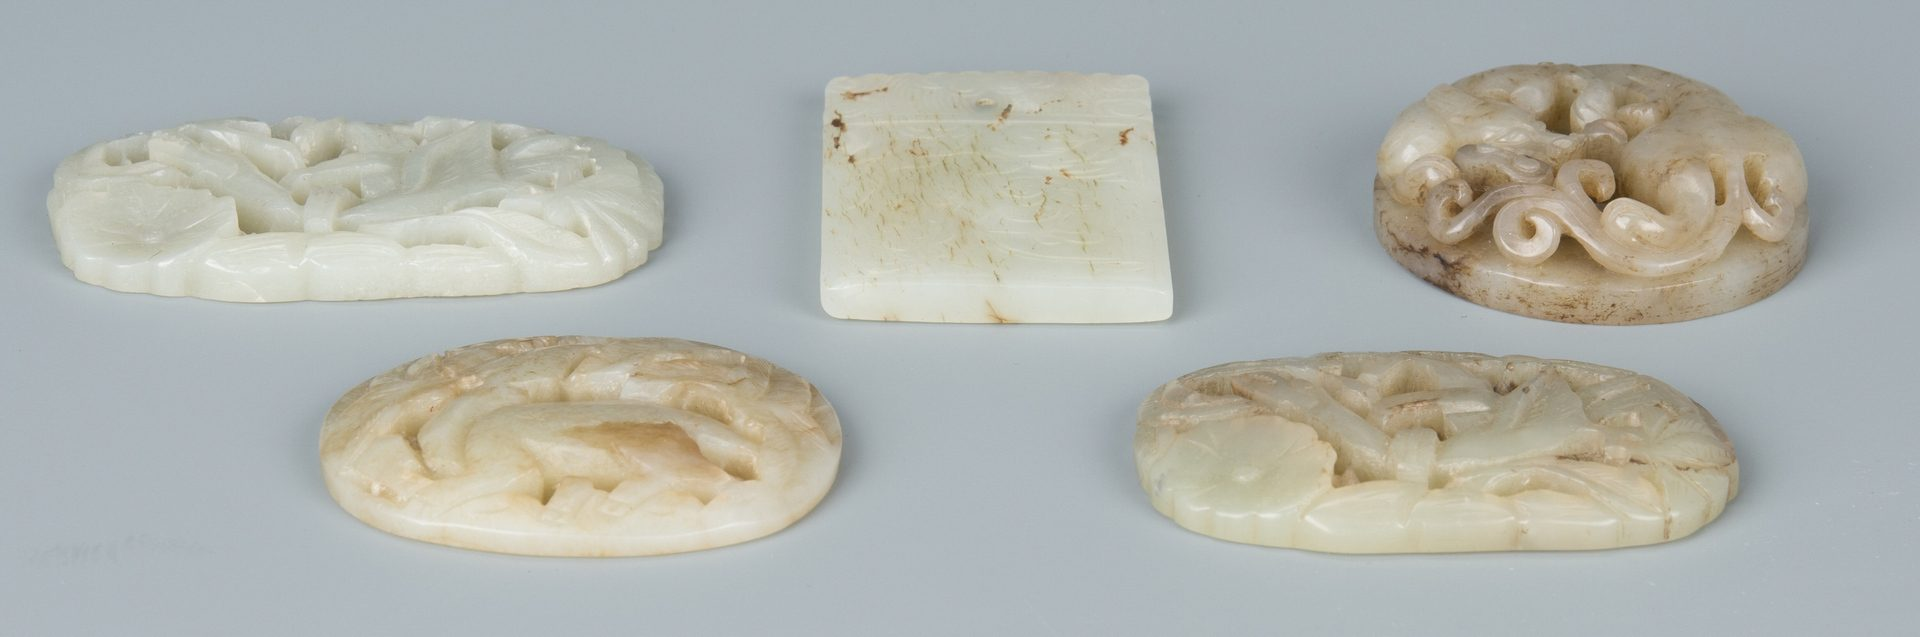 Lot 588: 5 Carved Chinese Celadon Jade Items